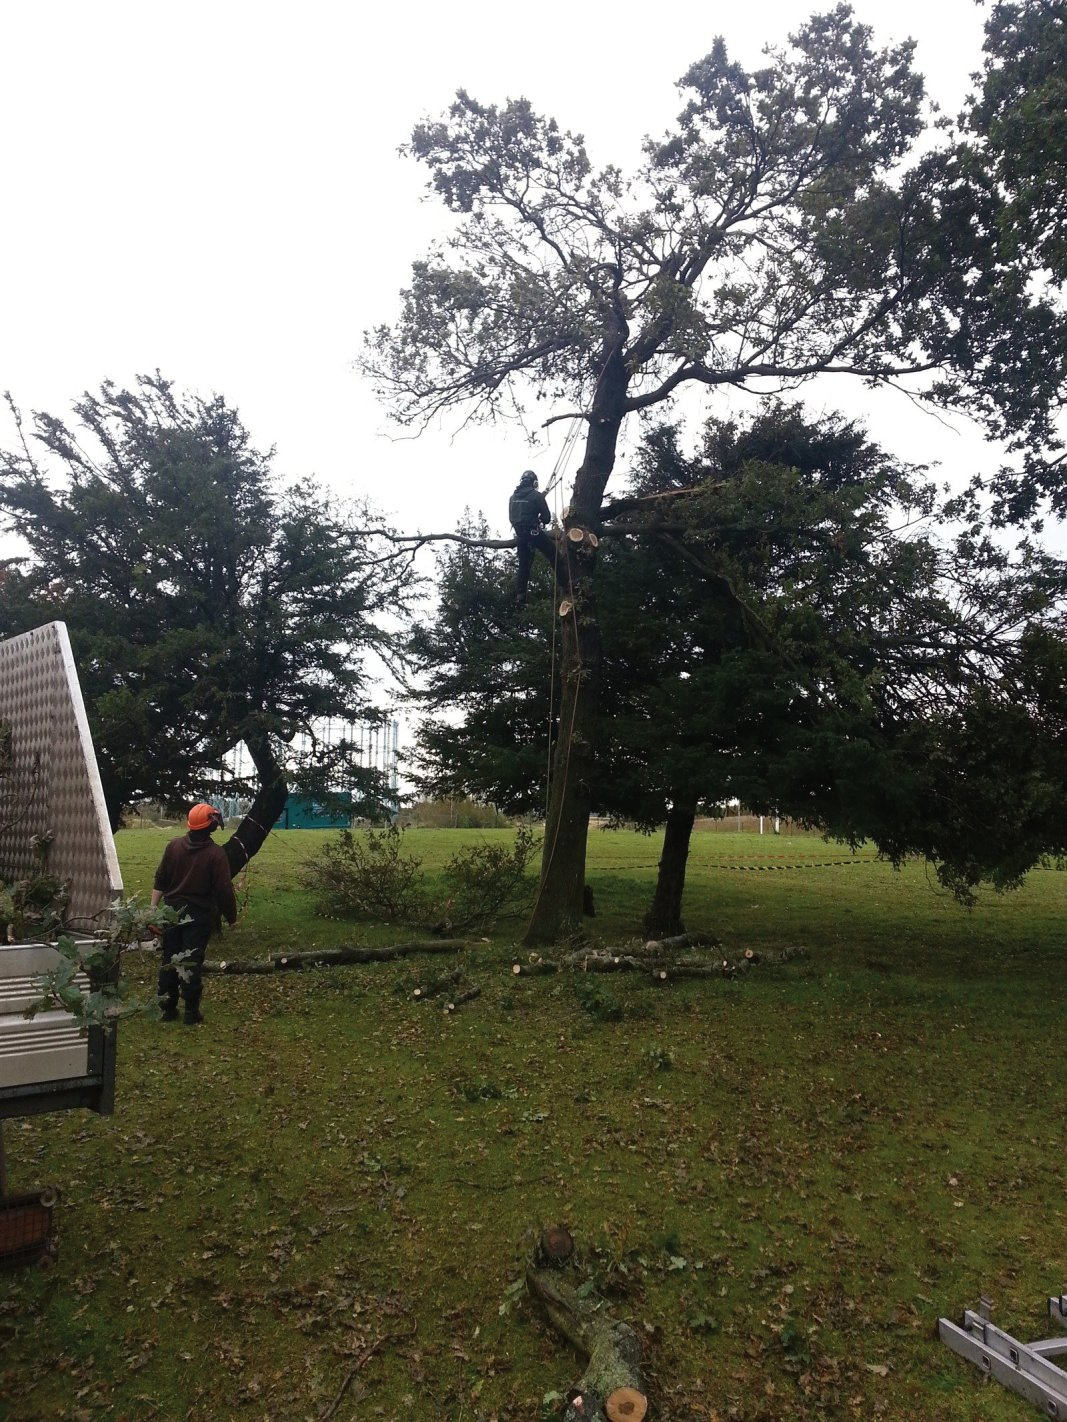 Tree surgeon for private gardens, office gardens, industrial areas, factory grounds and business parks in Edinburgh, Midlothian, East Lothian, Fife and the Scottish Borders regions